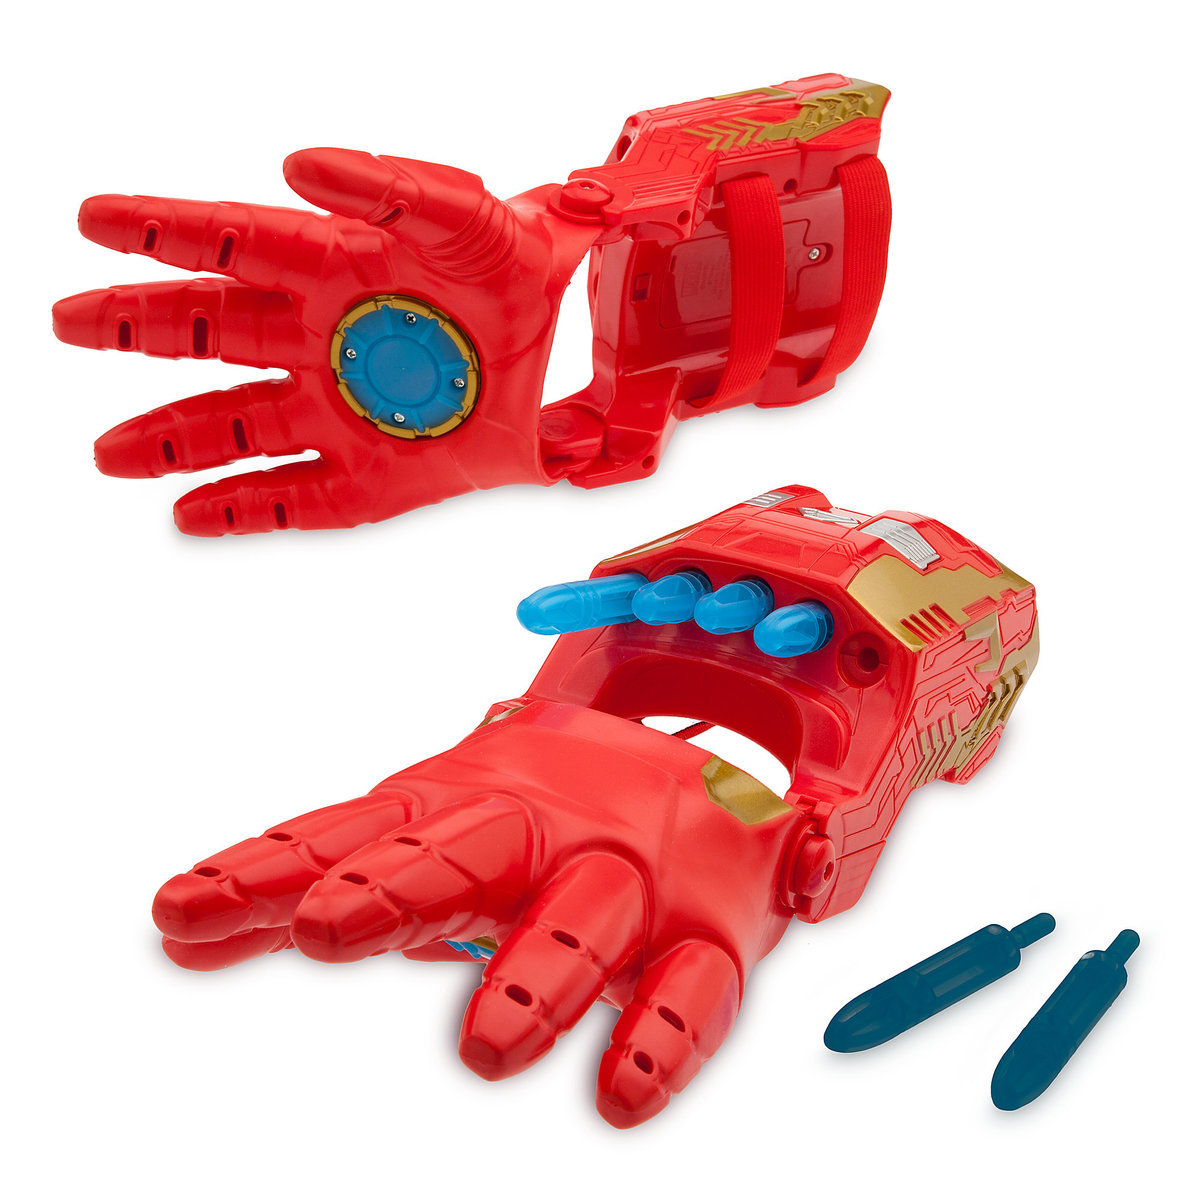 Product Image of Iron Man Repulsor Gloves - Marvel's Avengers: Infinity War # 1